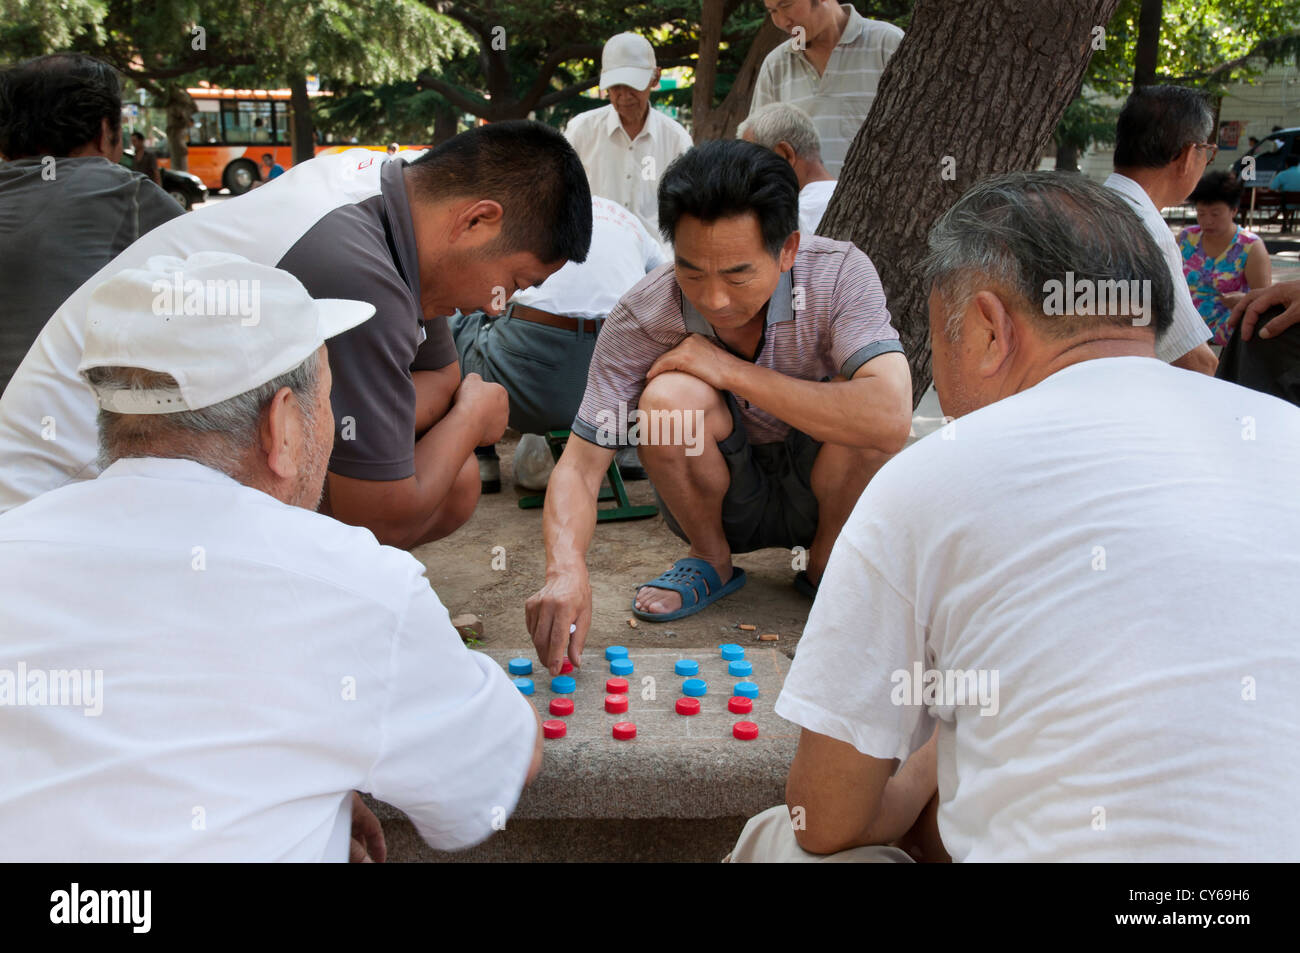 Chinese men play a game of draughts using bottle tops as counters, Qingdao, China - Stock Image